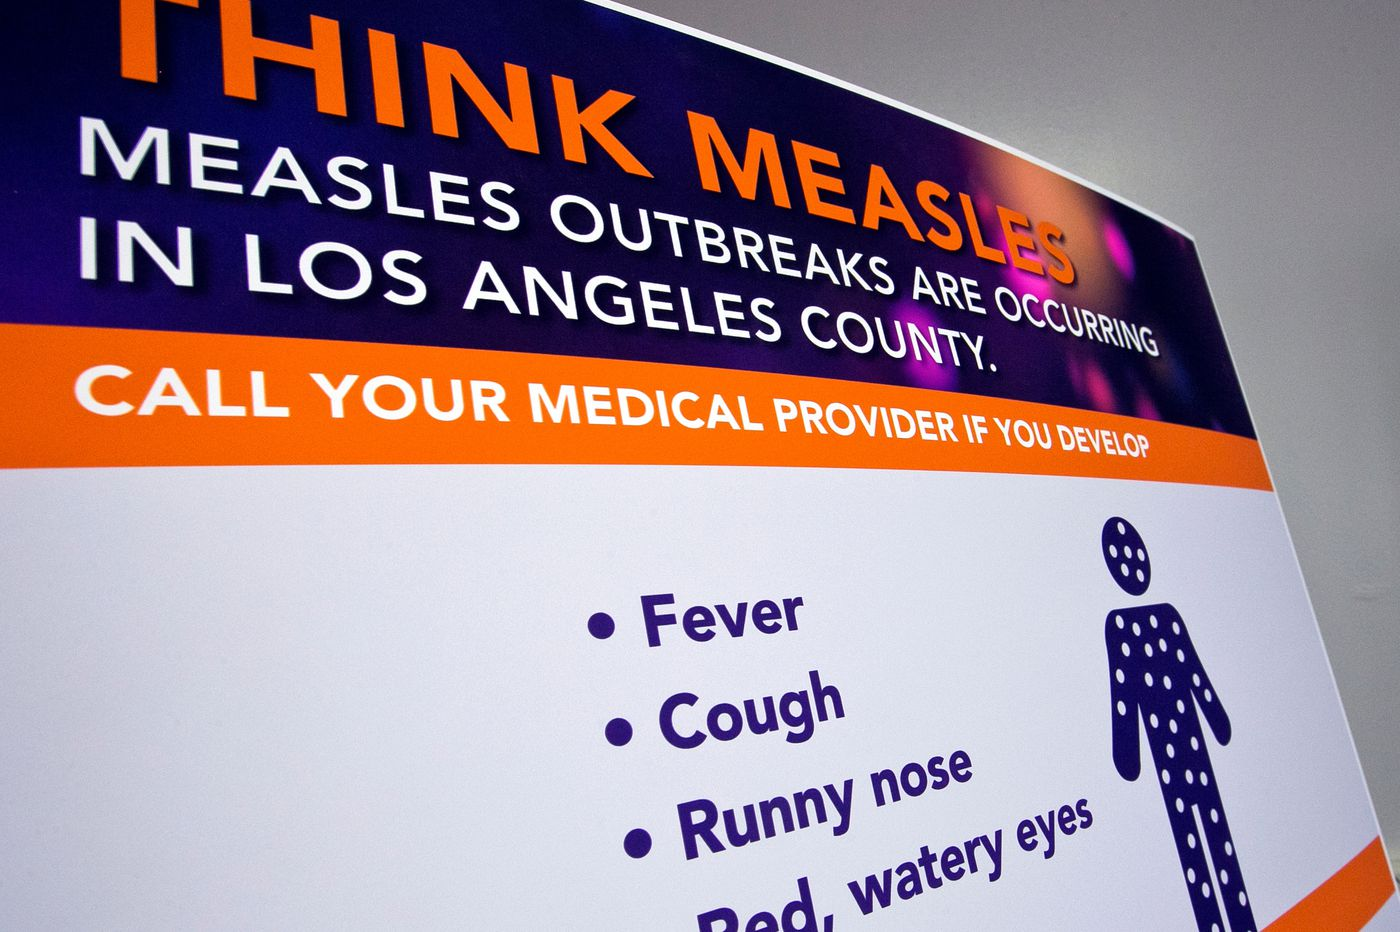 Philadelphia ranks 29th among U.S. counties most at risk for measles outbreaks